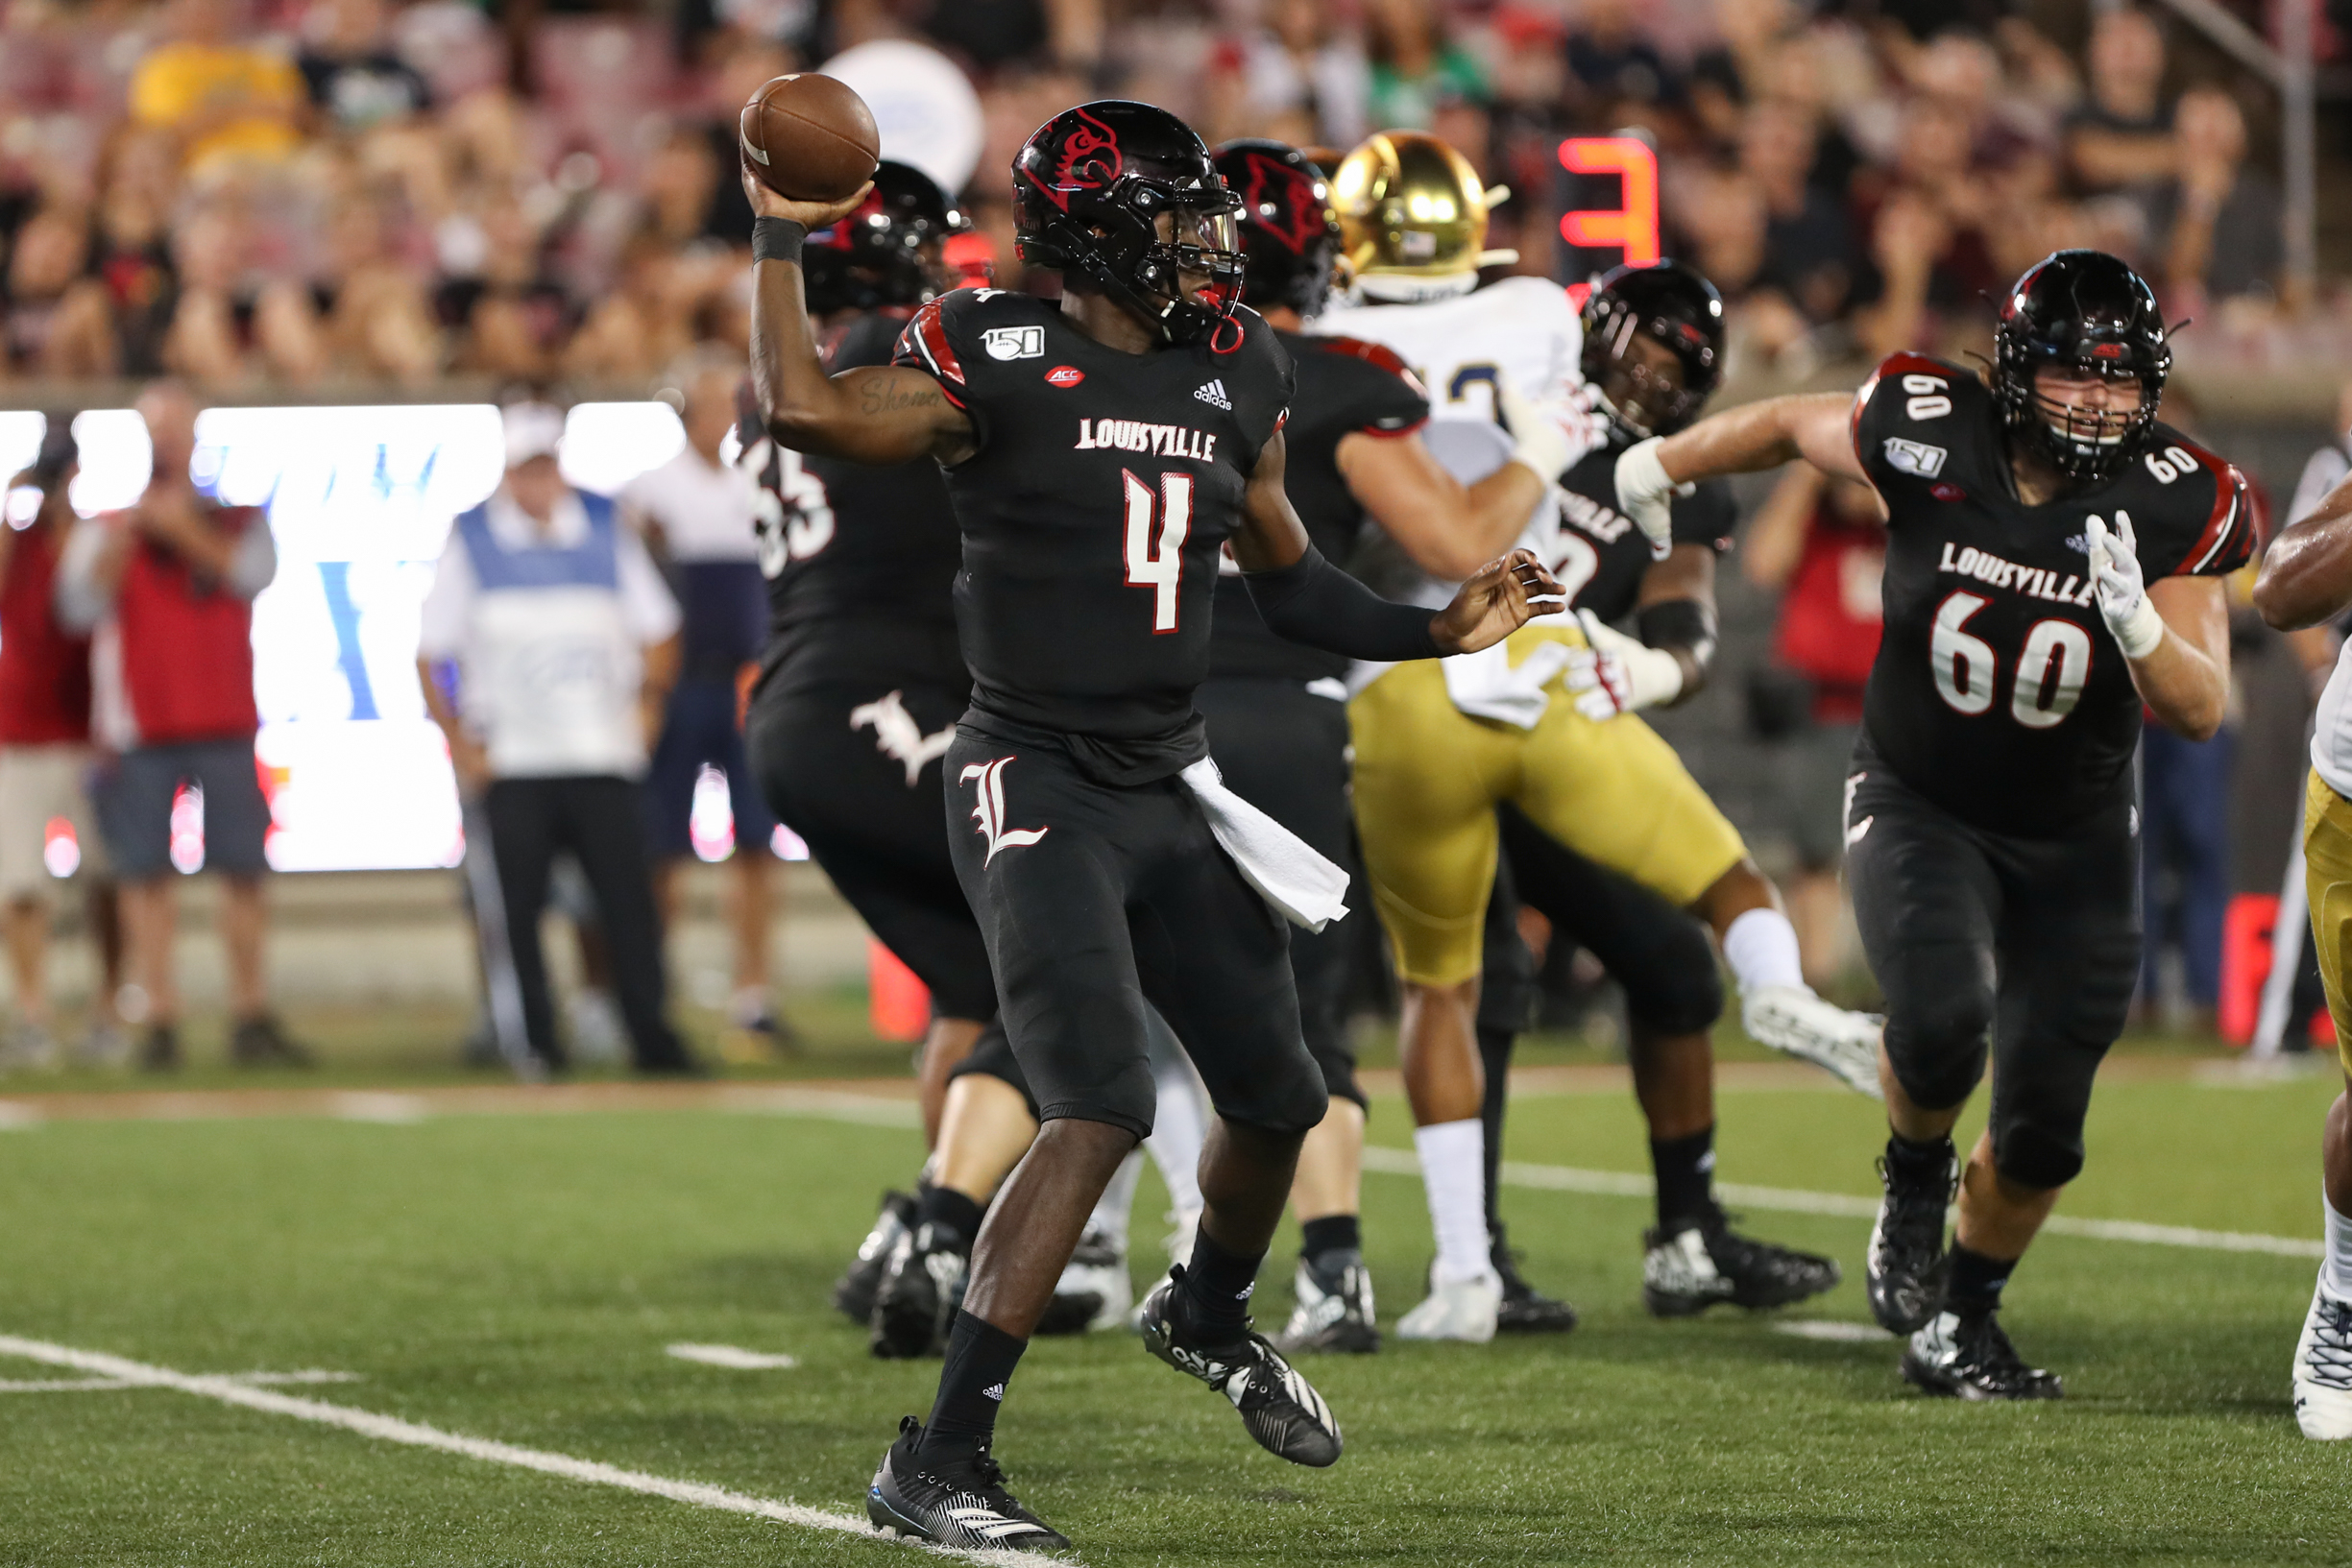 COLLEGE FOOTBALL: SEP 02 Notre Dame at Louisville